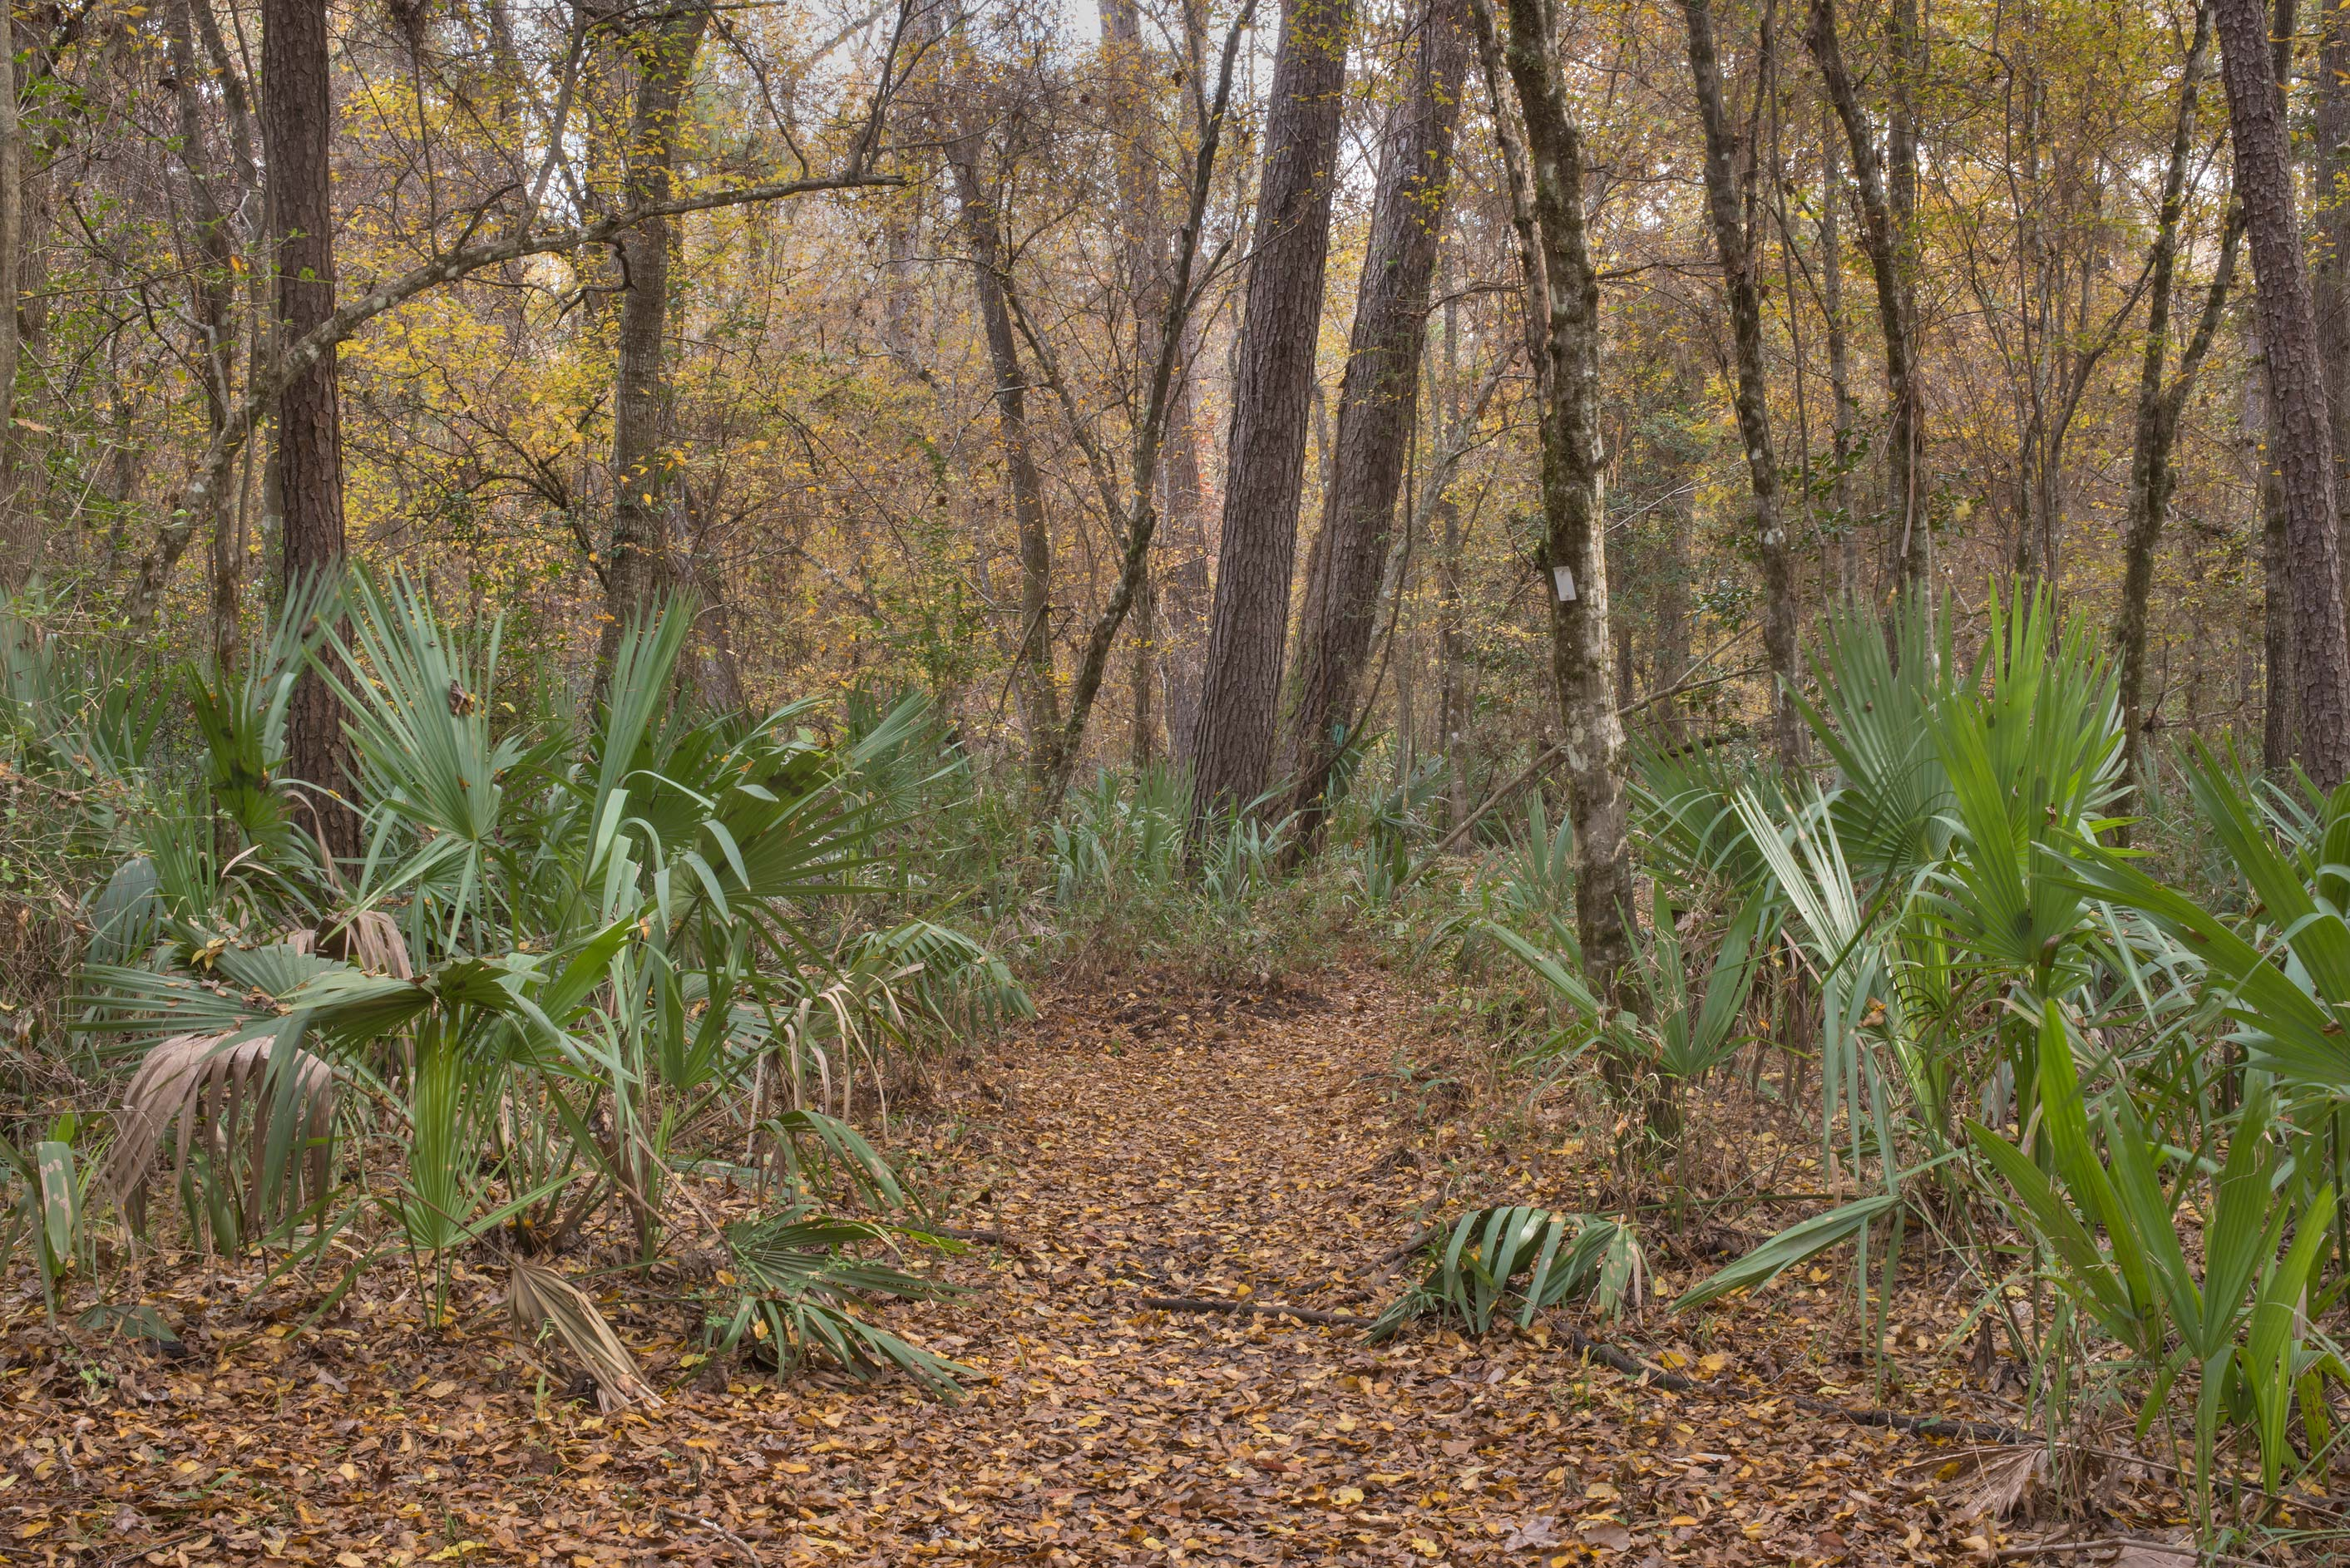 Swampy area with palmettos on Winters Bayou Trail...National Forest. Cleveland, Texas